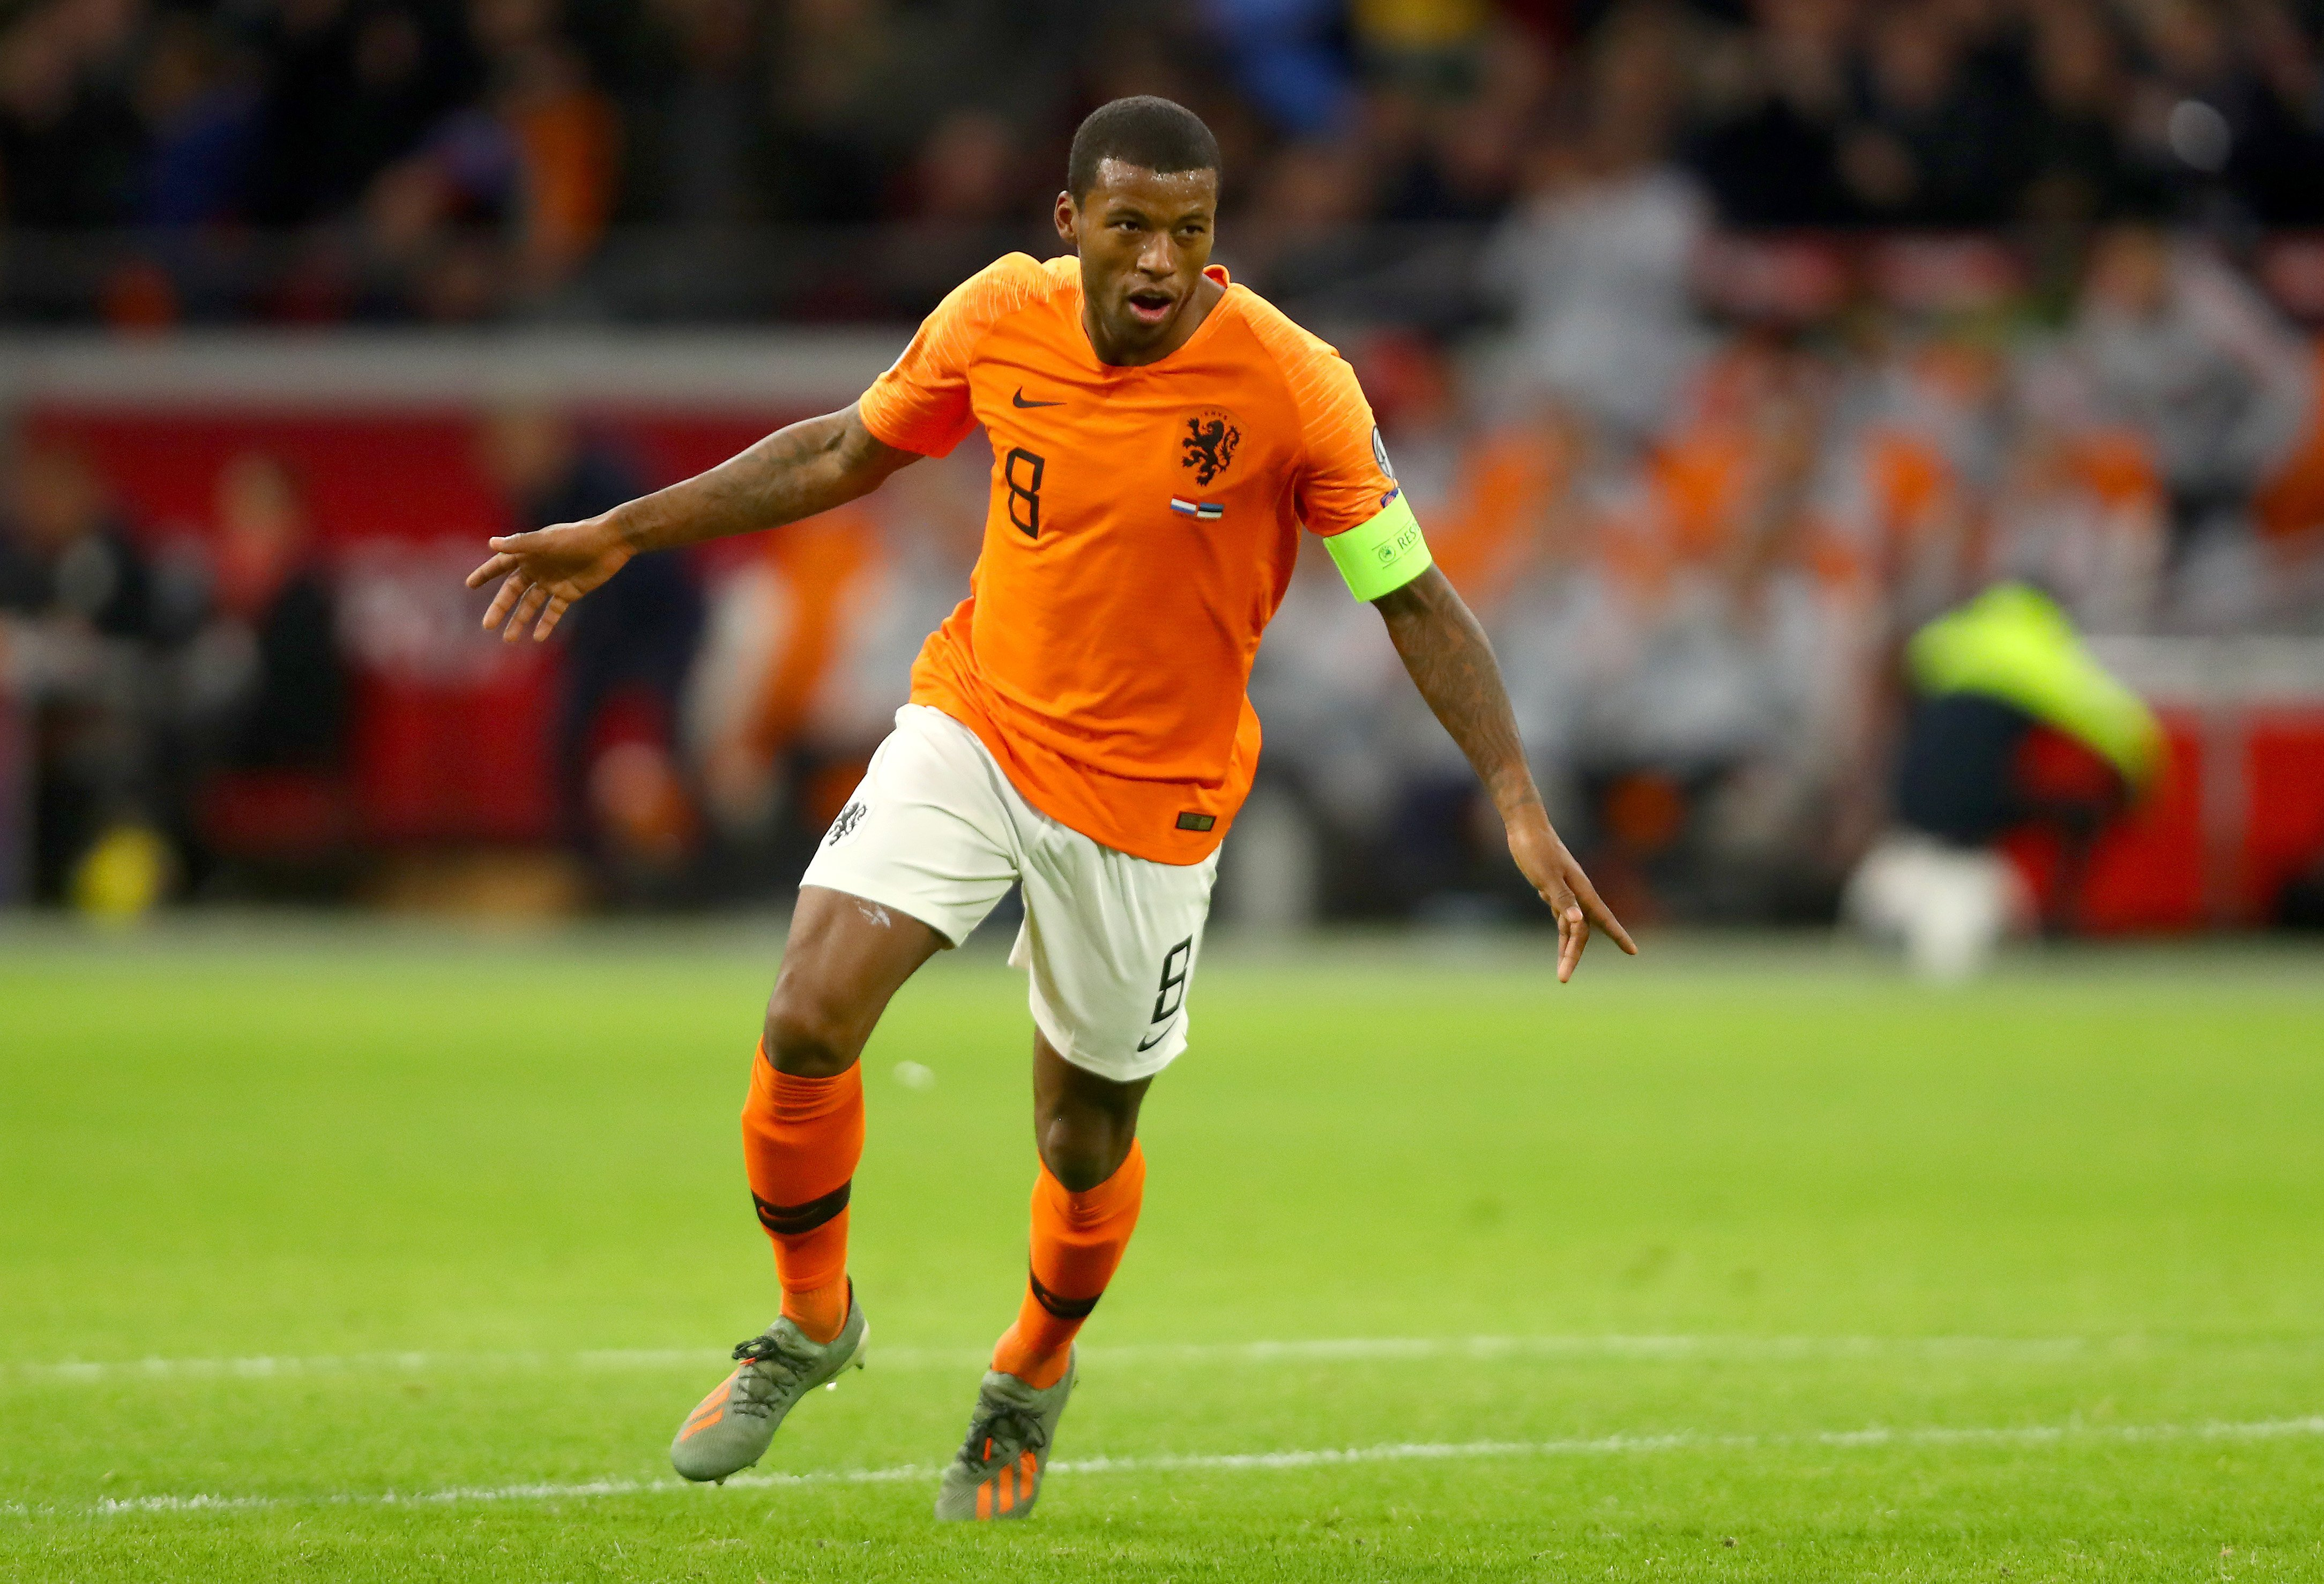 Georginio Wijnaldum is ready to walk off pitch if subjected to racist abuse